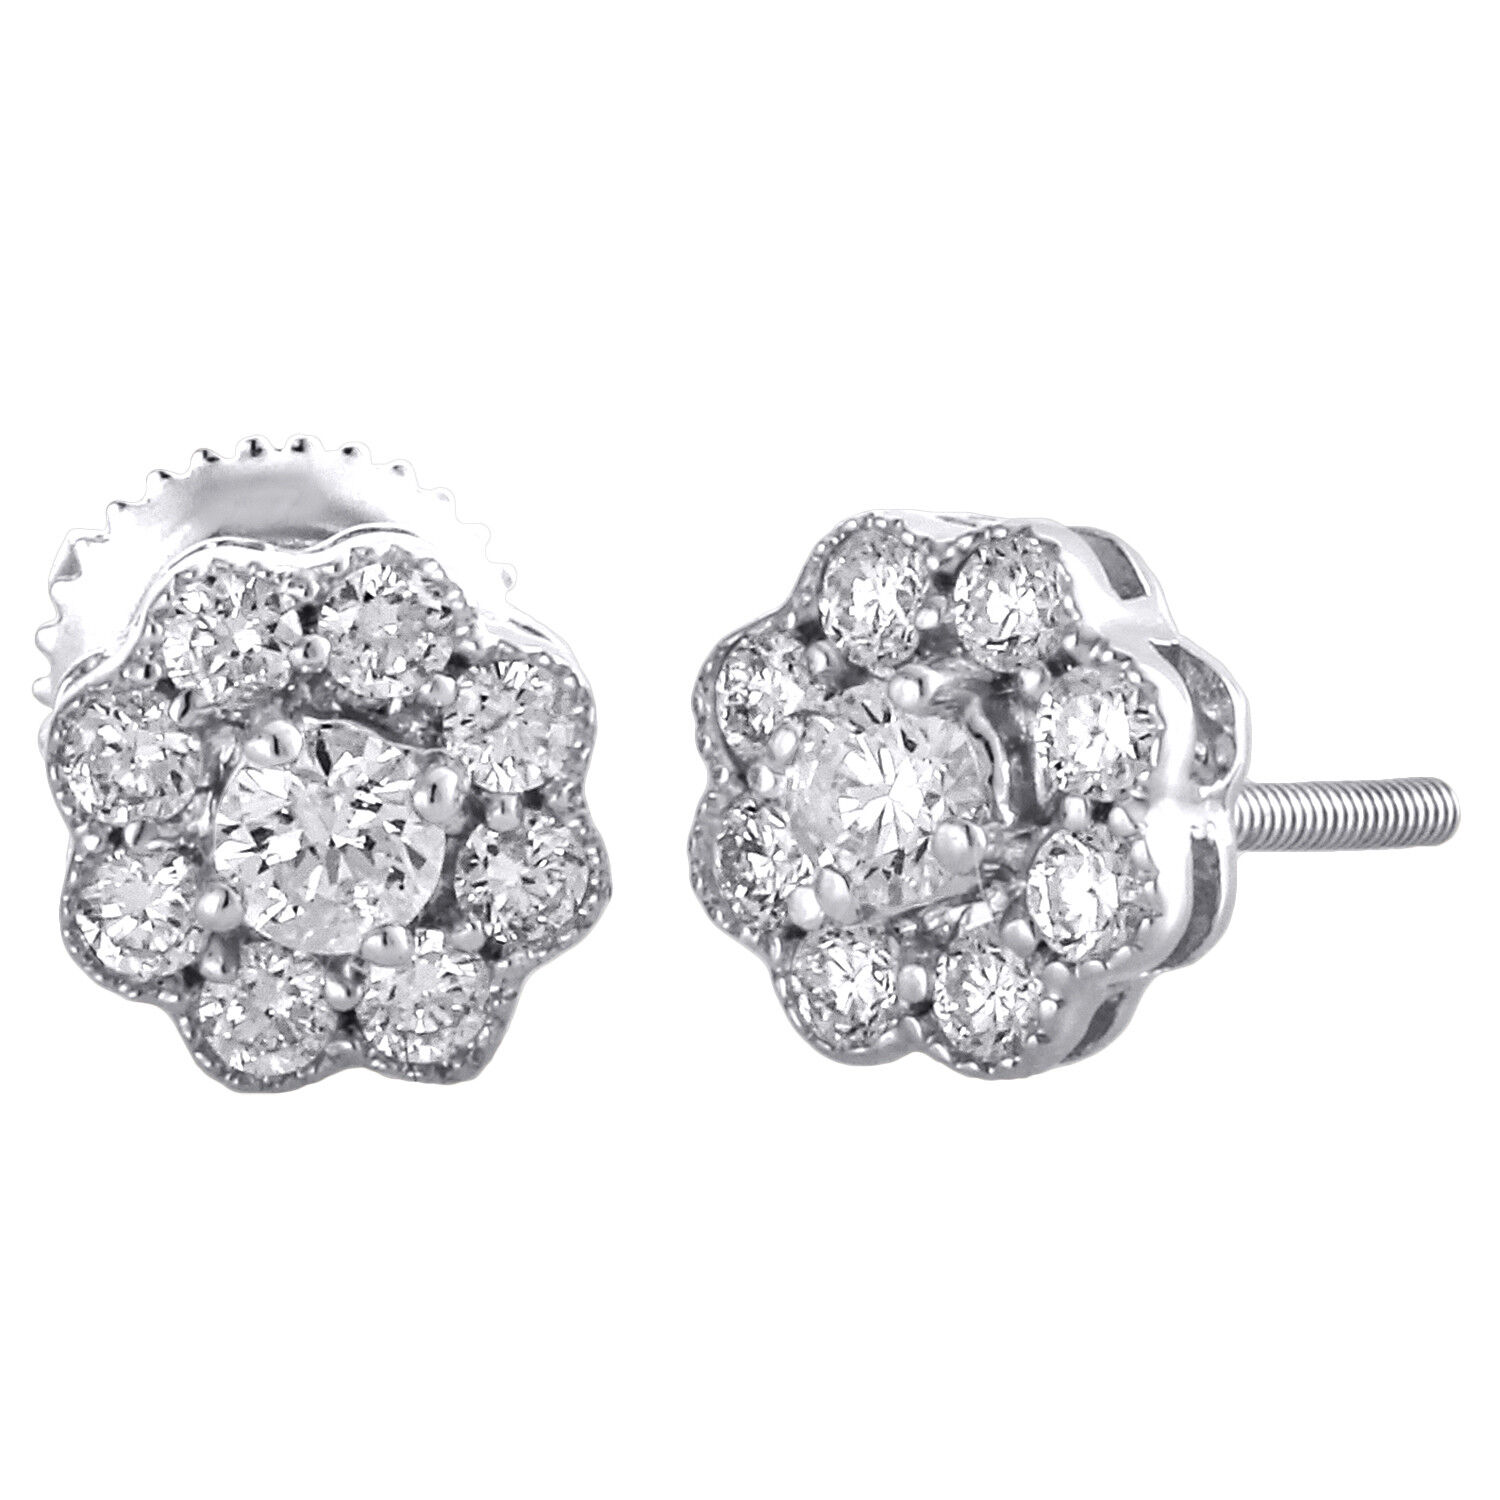 14K White gold Round Solitaire Diamond 7mm Flower Studs Earrings 0.50 CT.